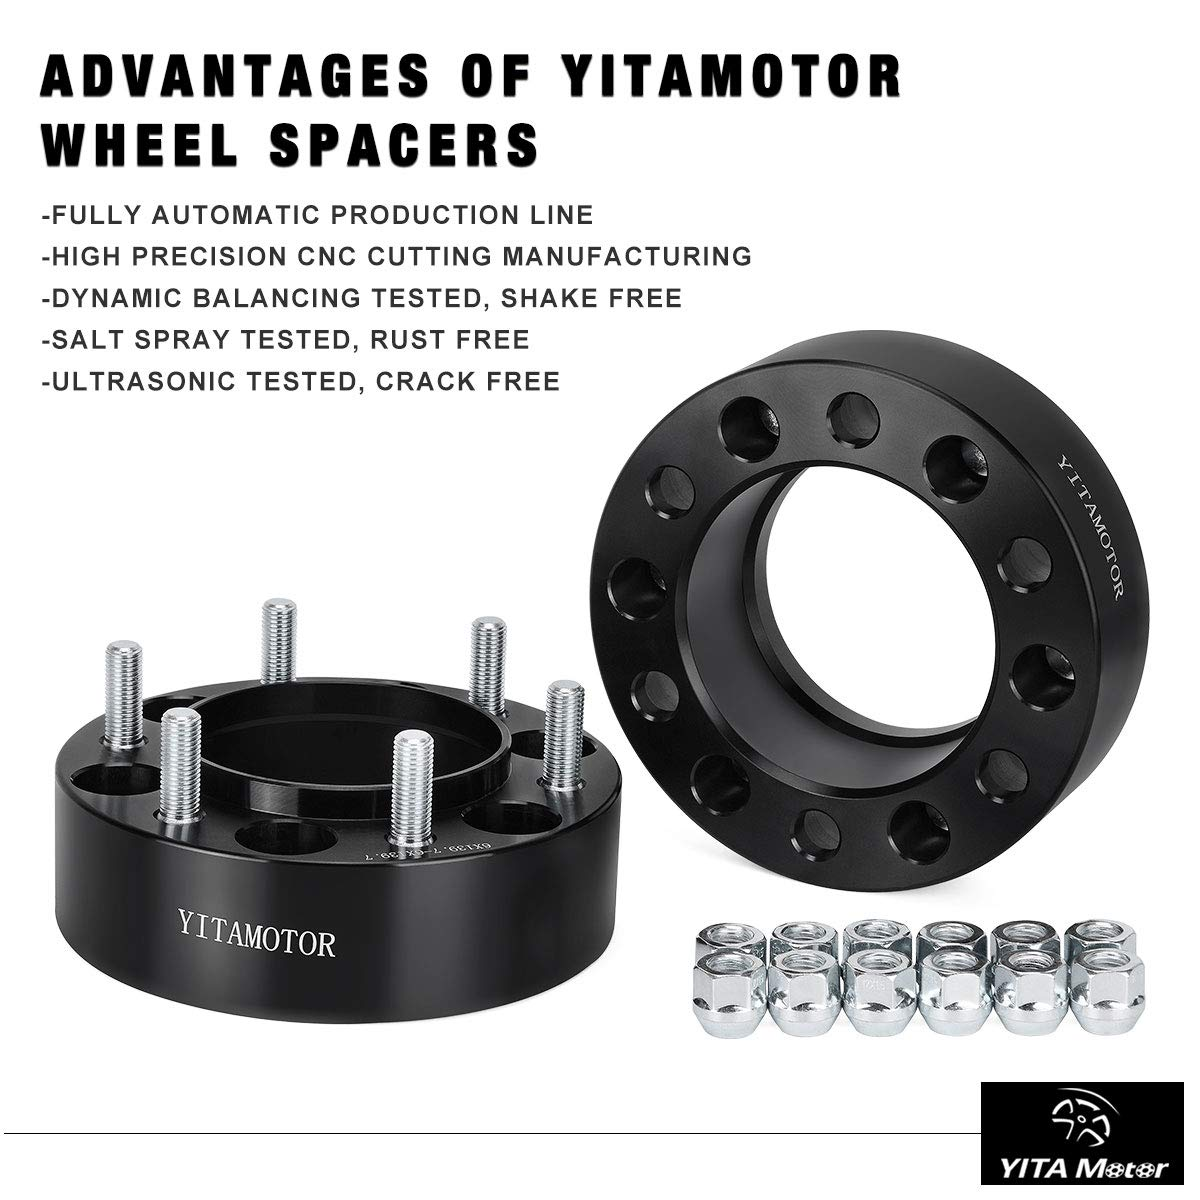 YITAMOTOR Wheel Spacers Toyota, 2nd-gen Forged Hubcentric, 2'' Wheel Adapters 6x5.5/6x139.7 Compatible for Toyota FJ Cruiser Tacoma Isuzu Lexus(12x1.5 Studs& 106mm Bore) by YITAMOTOR (Image #5)